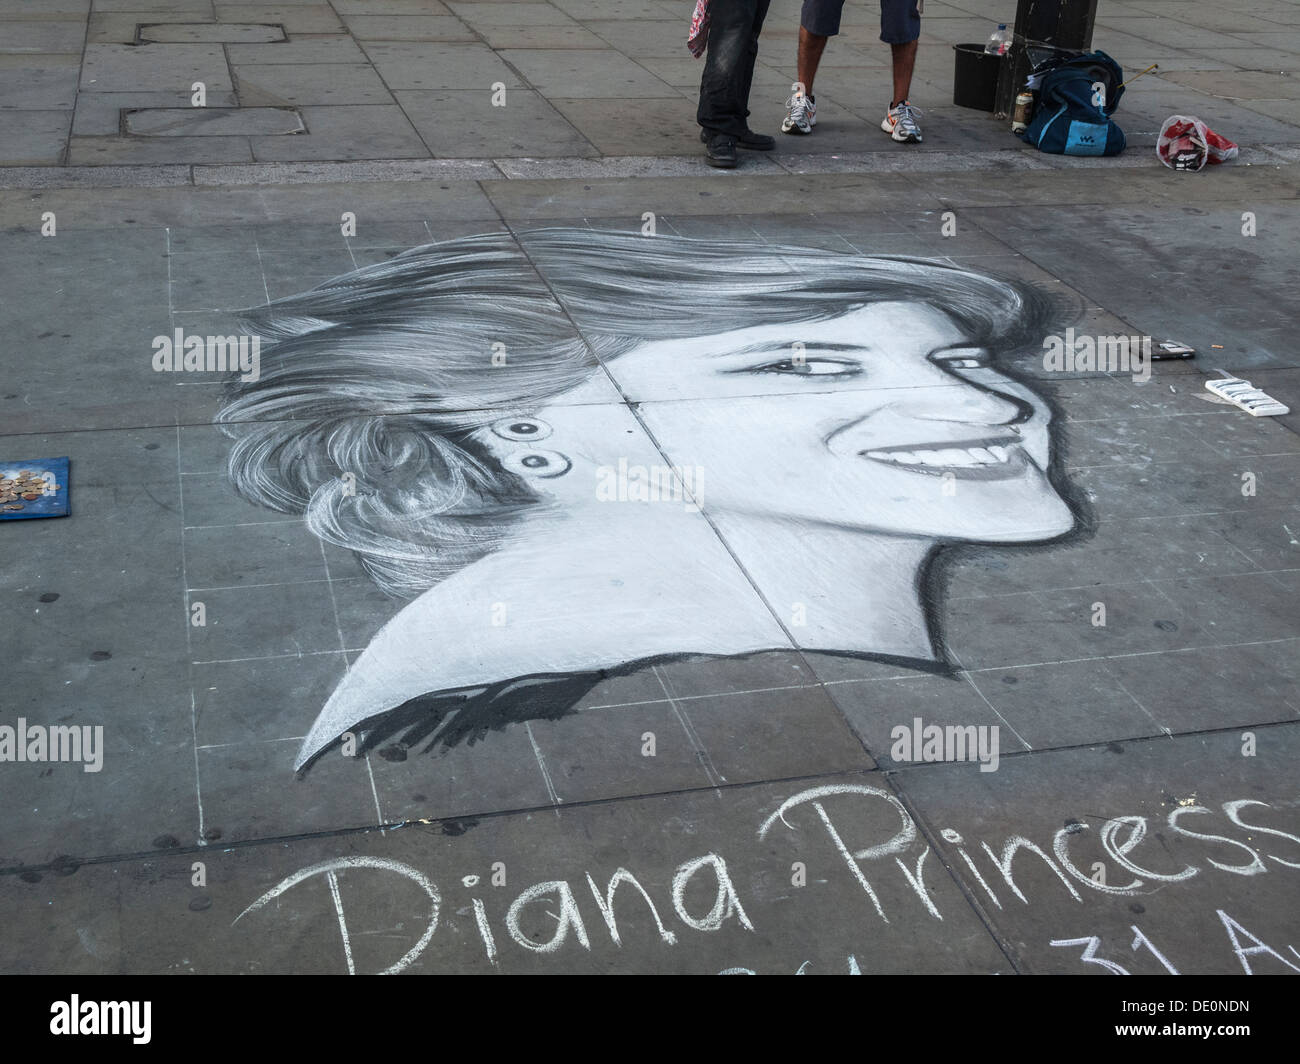 diana NDN Stock Photo - Street art chalk drawing of Diana Princess of Wales (Lady  Di), on a pavement in Trafalgar Square, London, UK